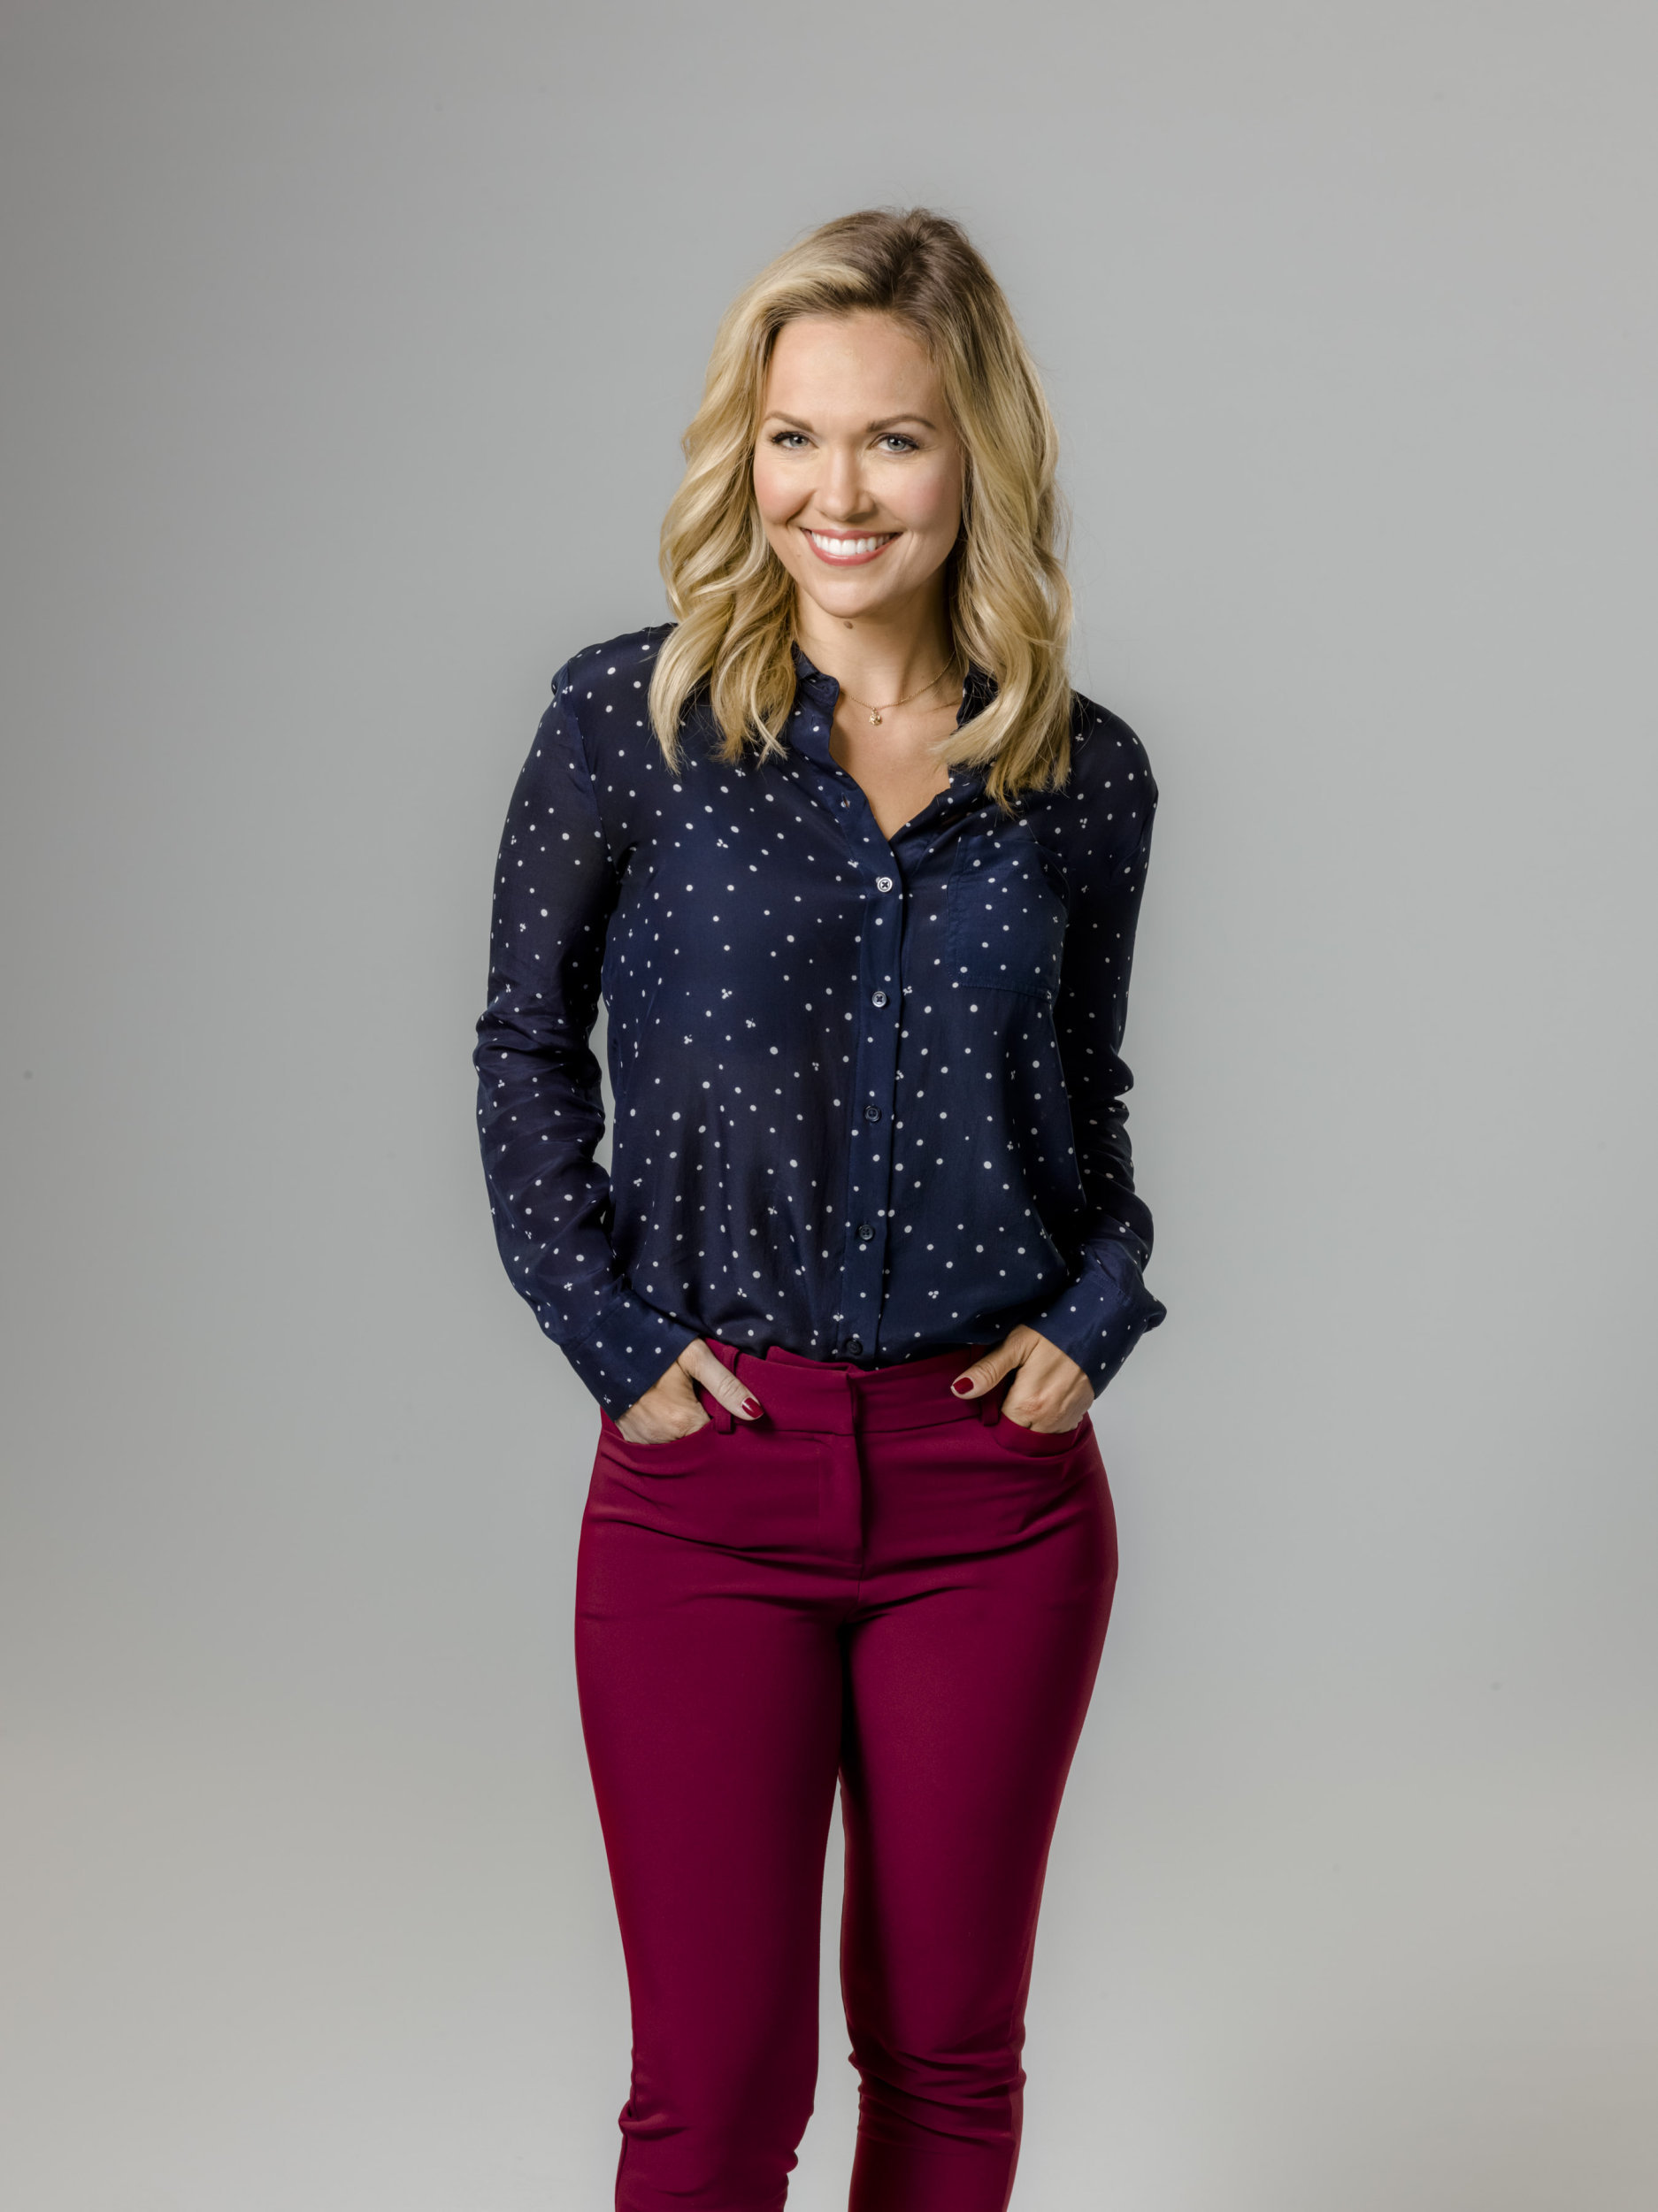 Emilie Ullerup as Melanie Welch on With Love Christmas